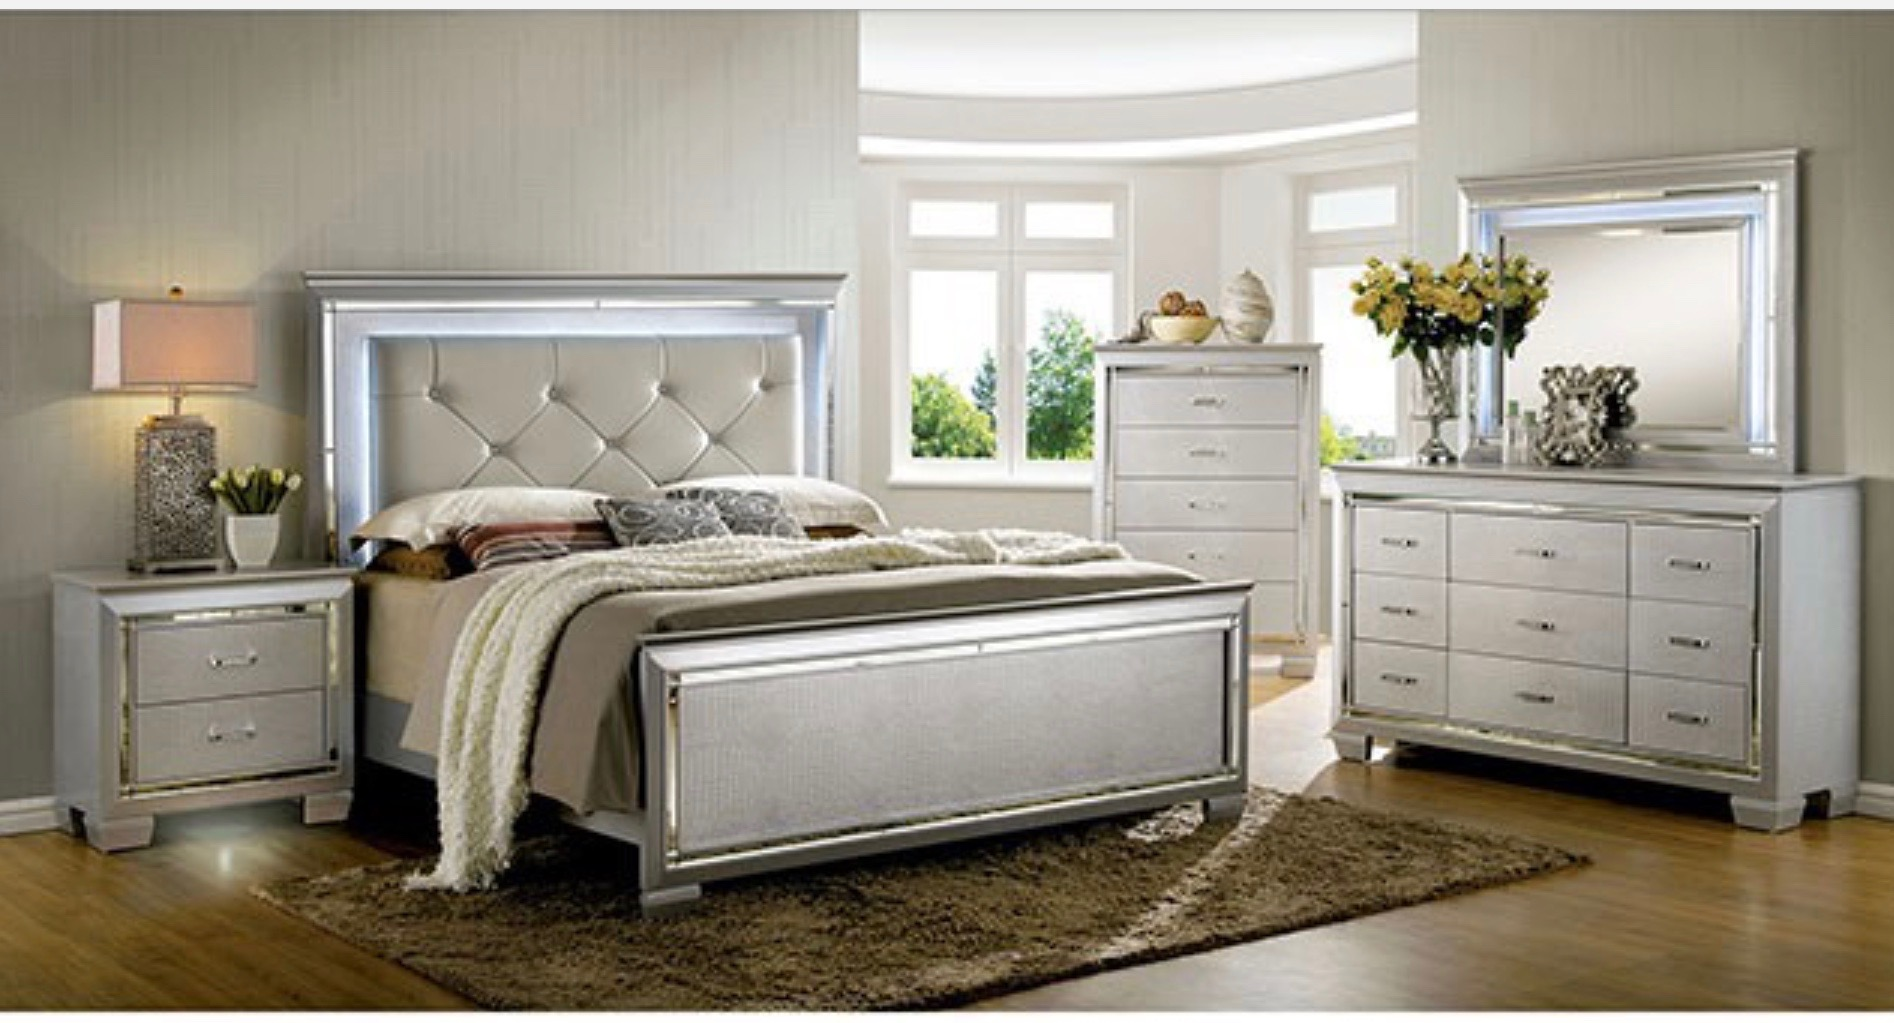 BEDROOM SET 5PC $1999.